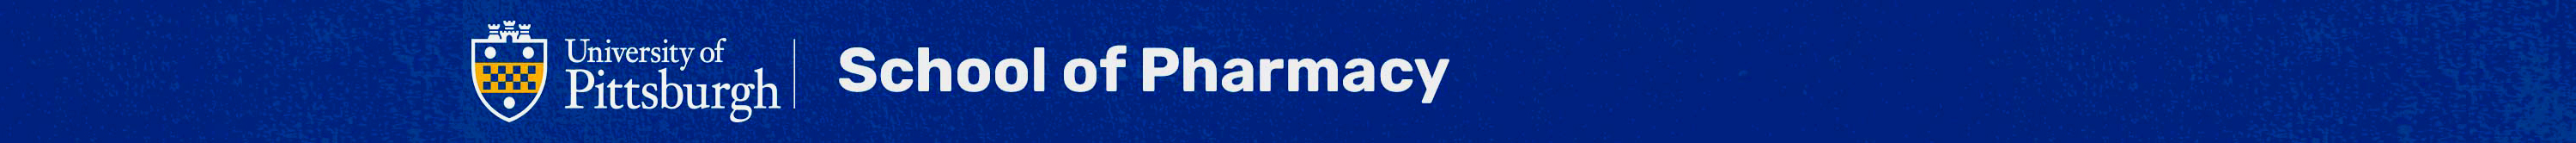 Pitt Pharmacy Header Graphic